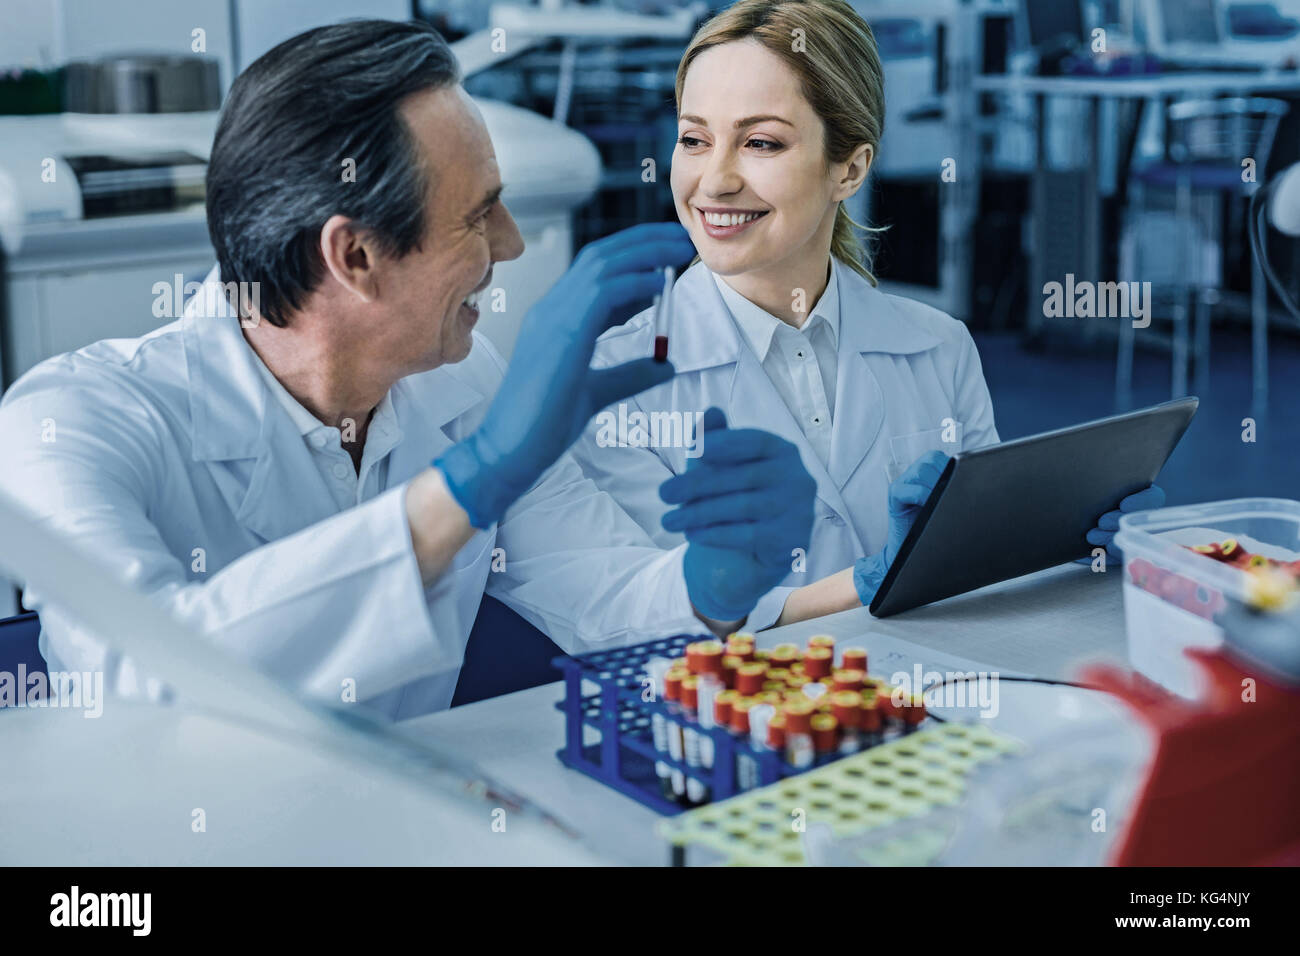 Delighted friendly colleagues interacting with each other - Stock Image